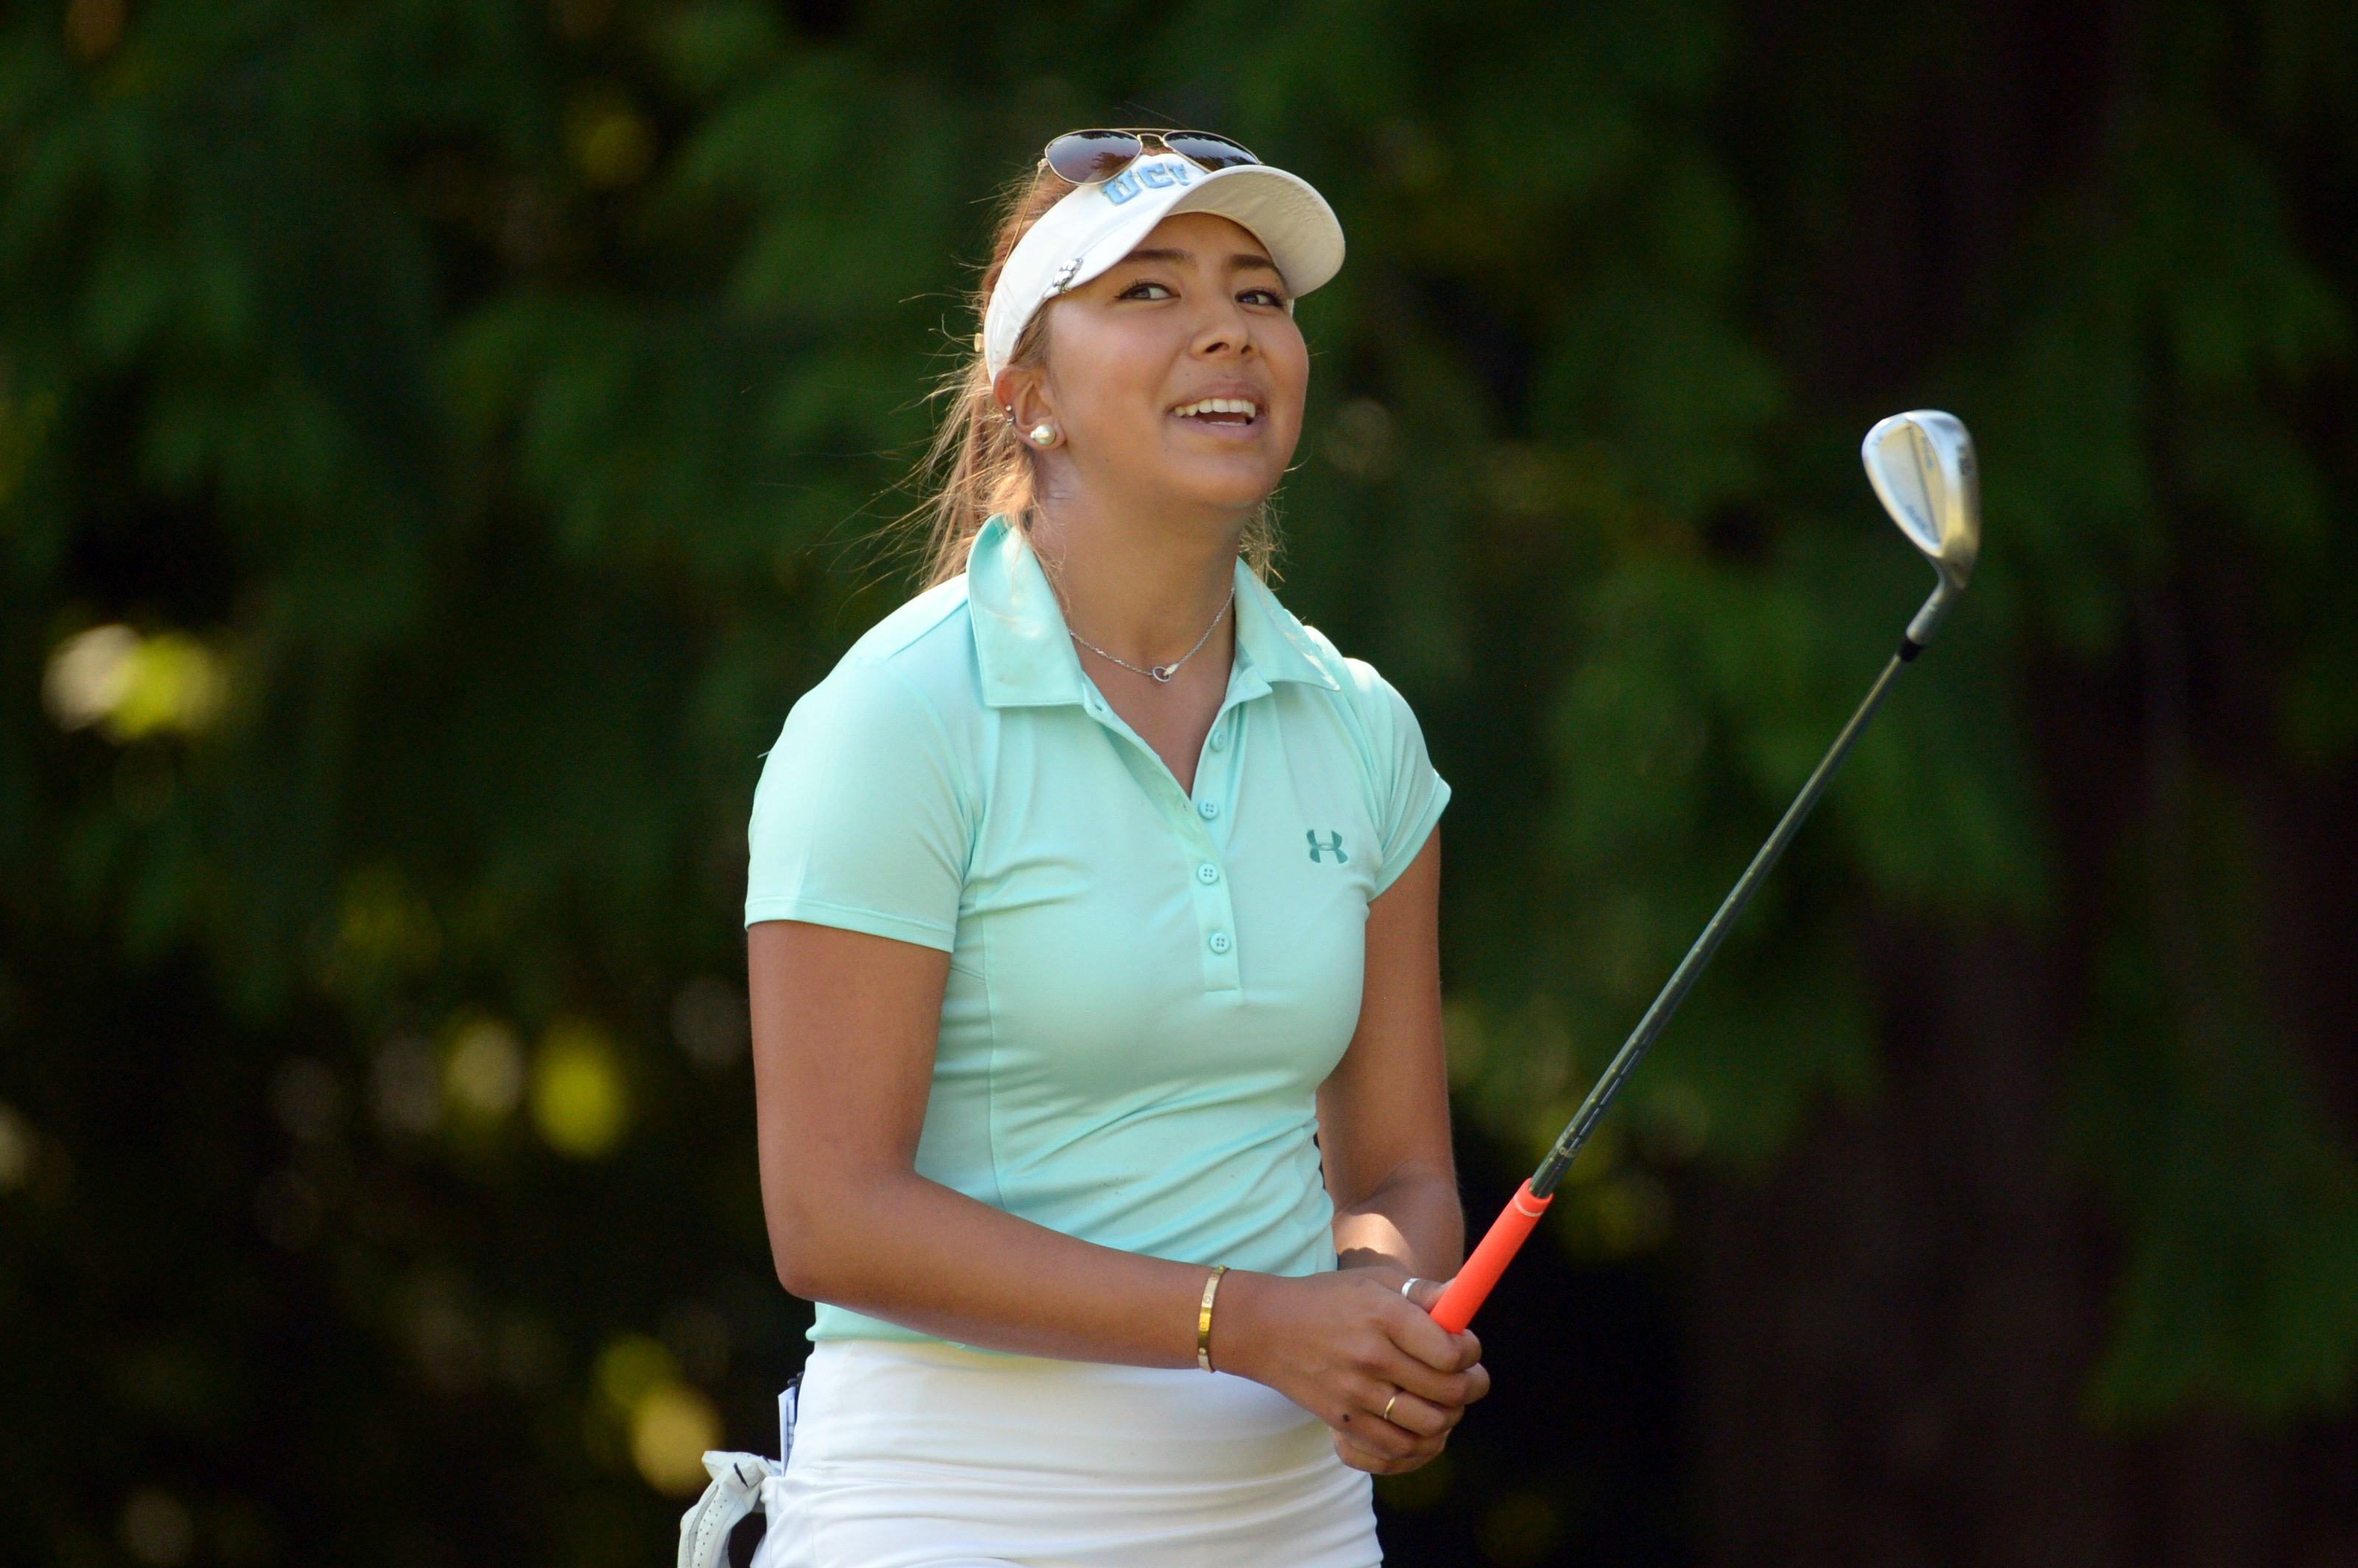 Alison Lee, of the United States, reacts after her shot onto the seventh green at the Canadian Pacific Women's Open golf tournament at the Vancouver Golf Club in Coquitlam, British Columbia, Saturday, Aug. 22, 2015. (Jonathan Hayward/The Canadian Press vi